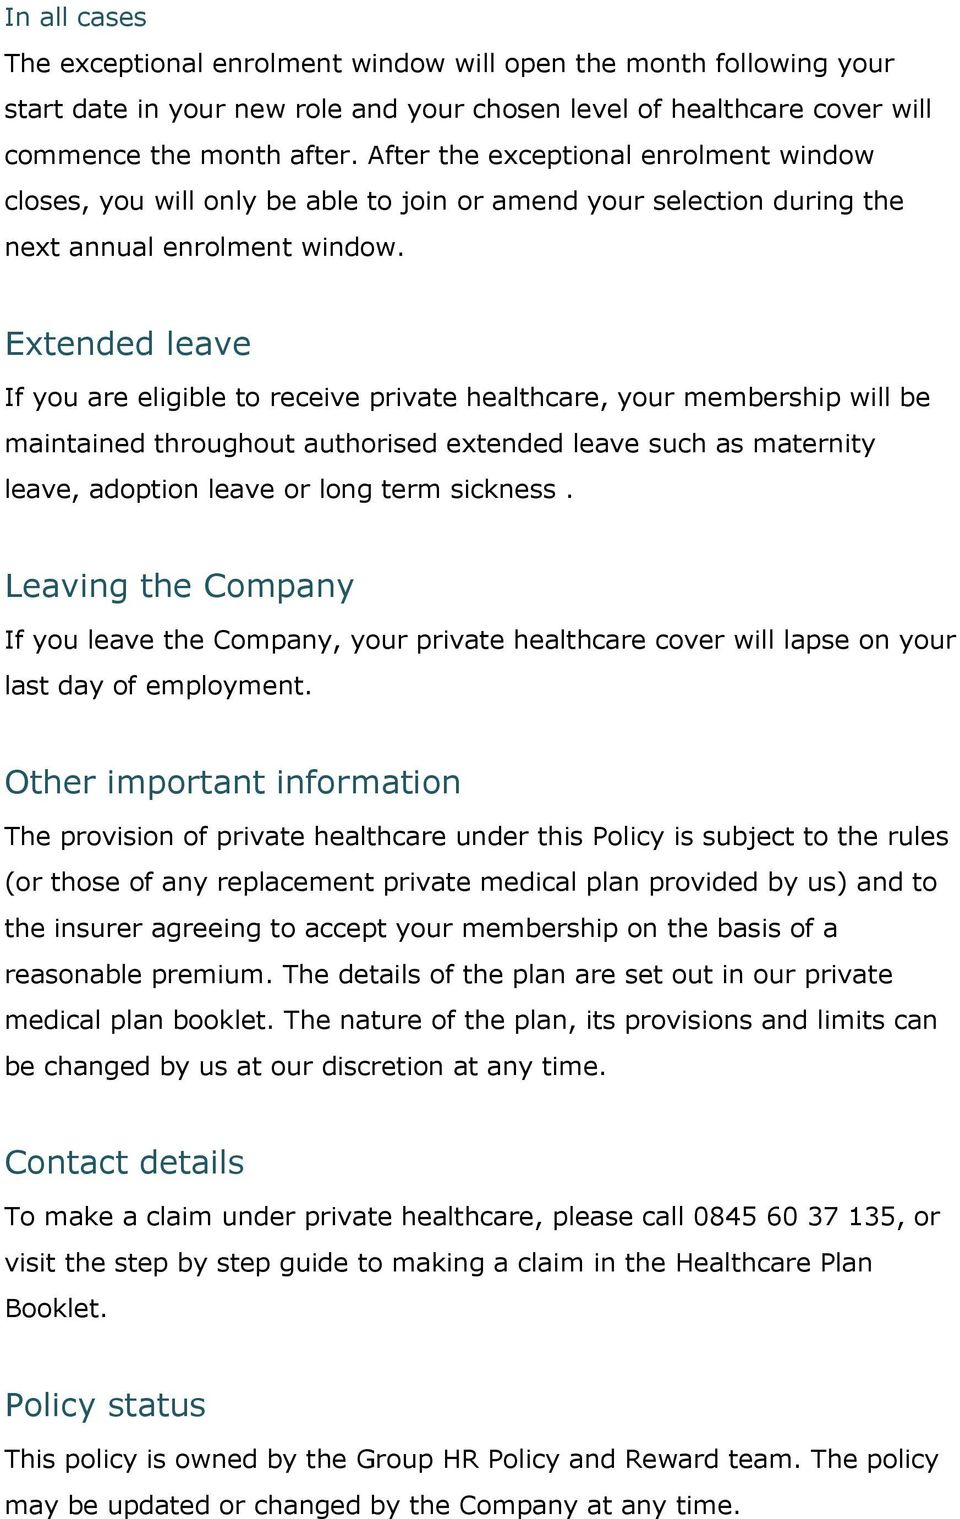 Extended leave If you are eligible to receive private healthcare, your membership will be maintained throughout authorised extended leave such as maternity leave, adoption leave or long term sickness.